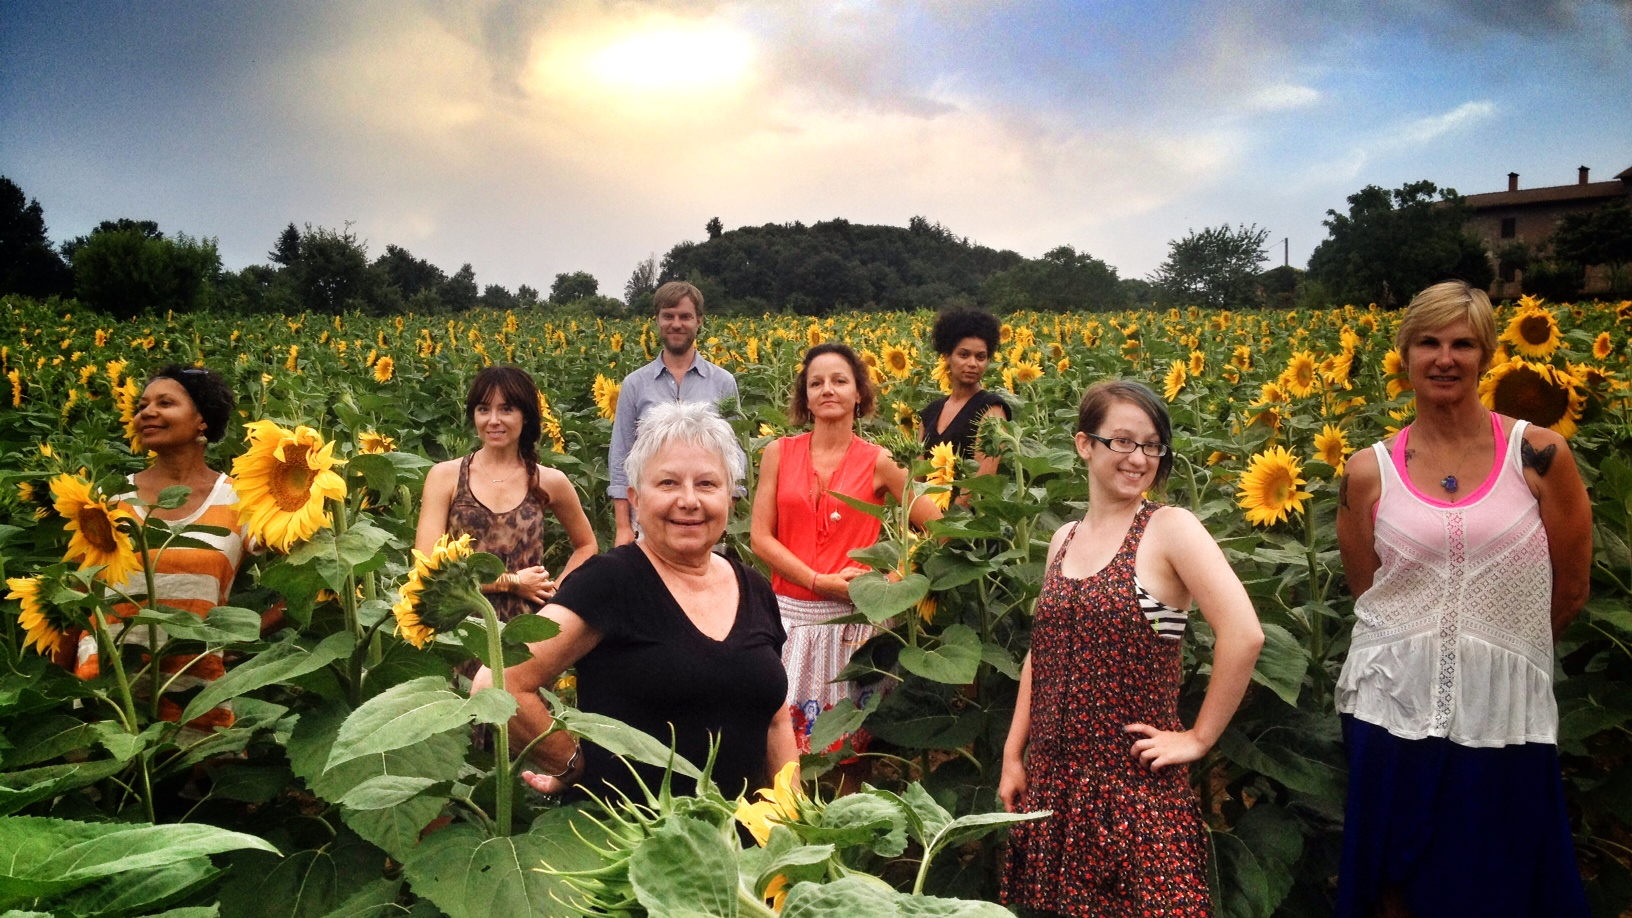 Guests in the sunflowers EAT.PRAY.MOVE Yoga Retreats | Tuscany, Italy